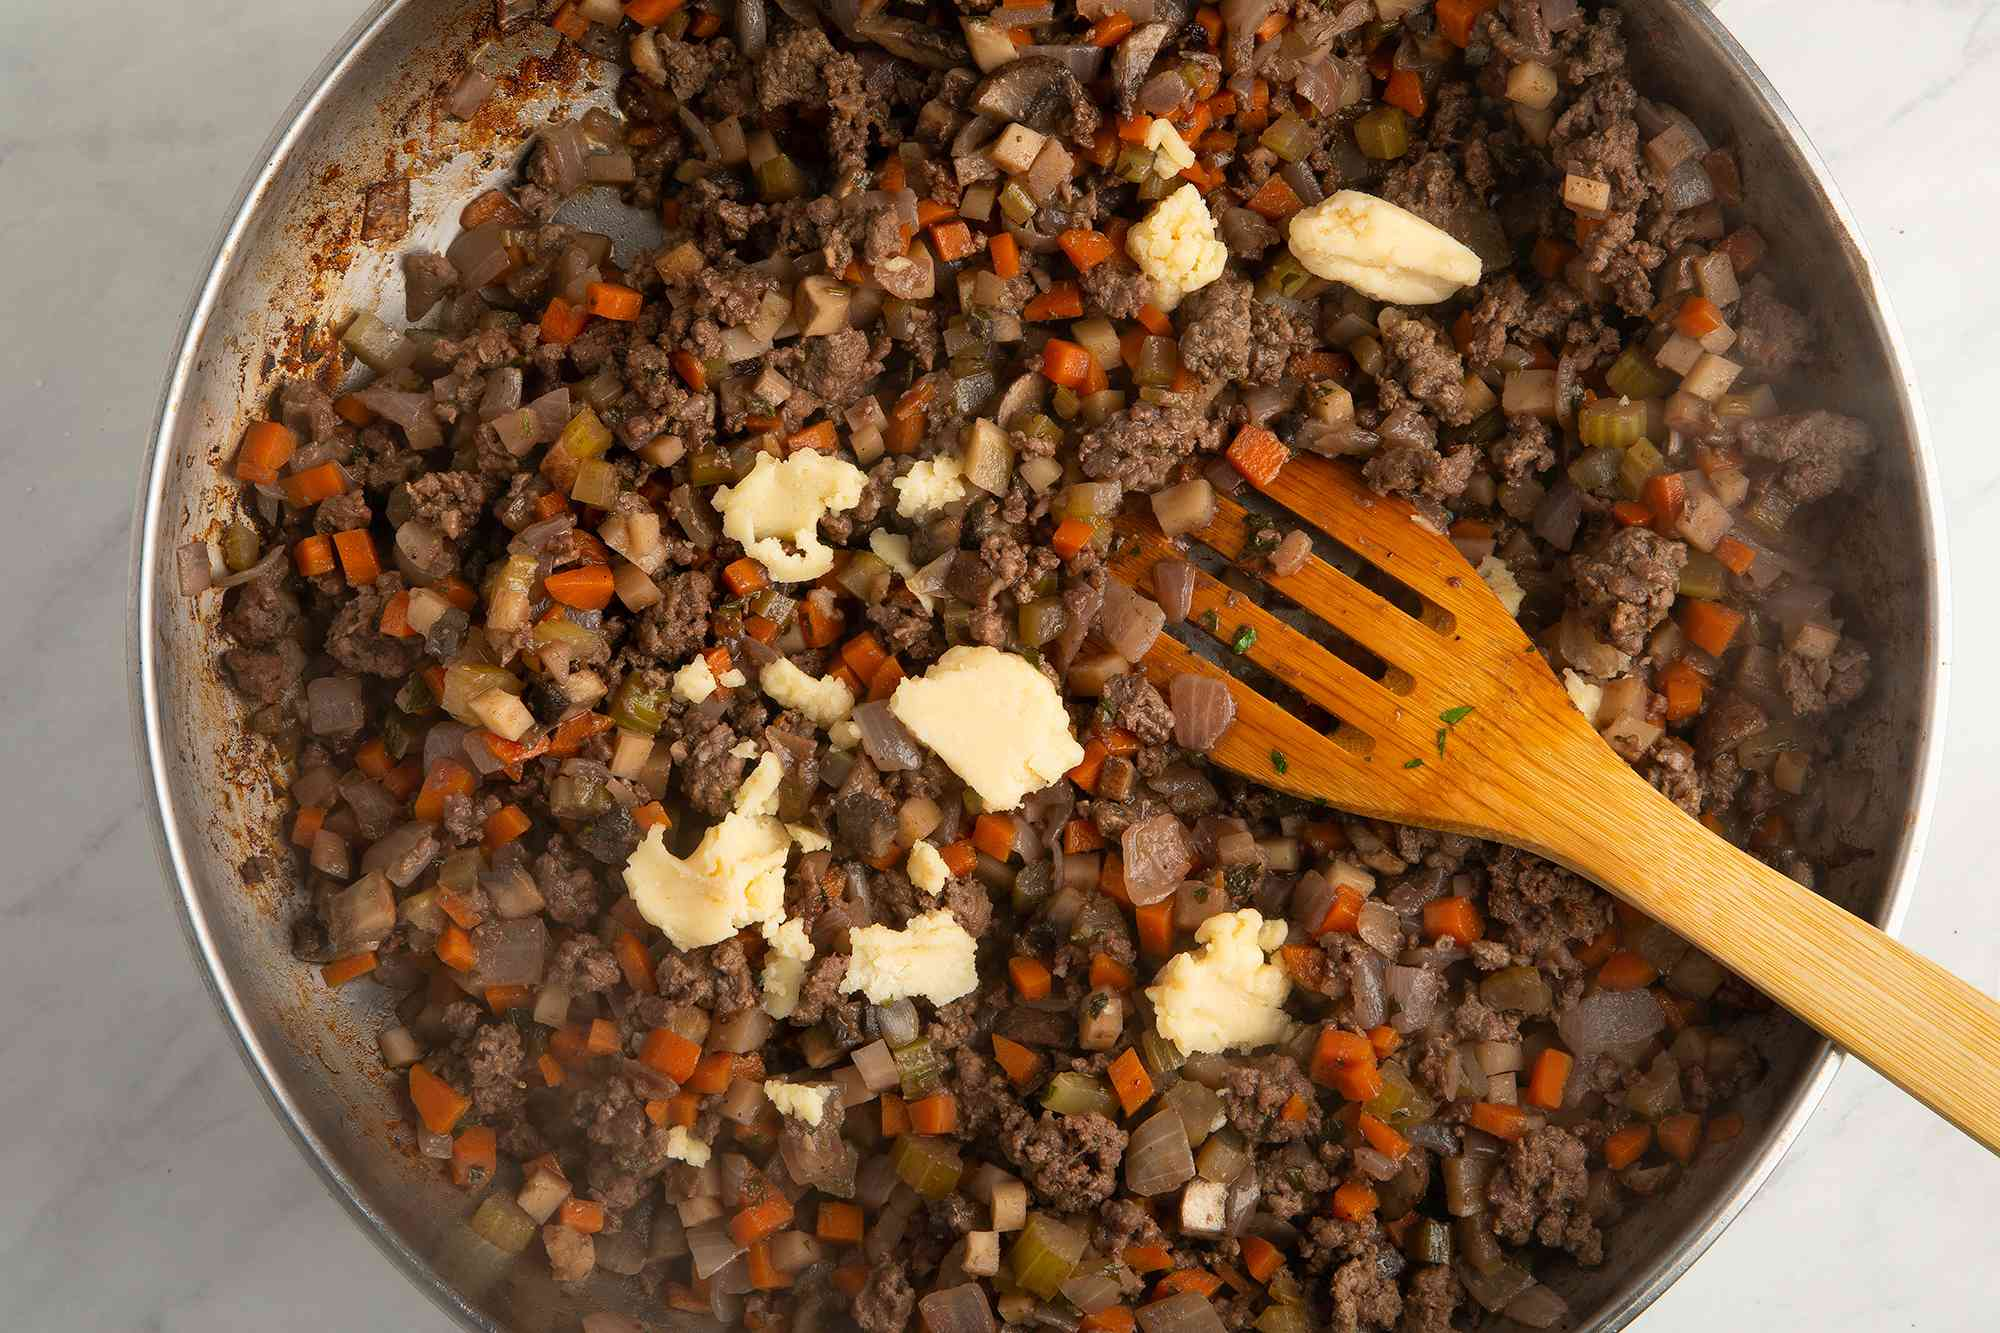 add the flour and butter mixture to meat mixture in the pan